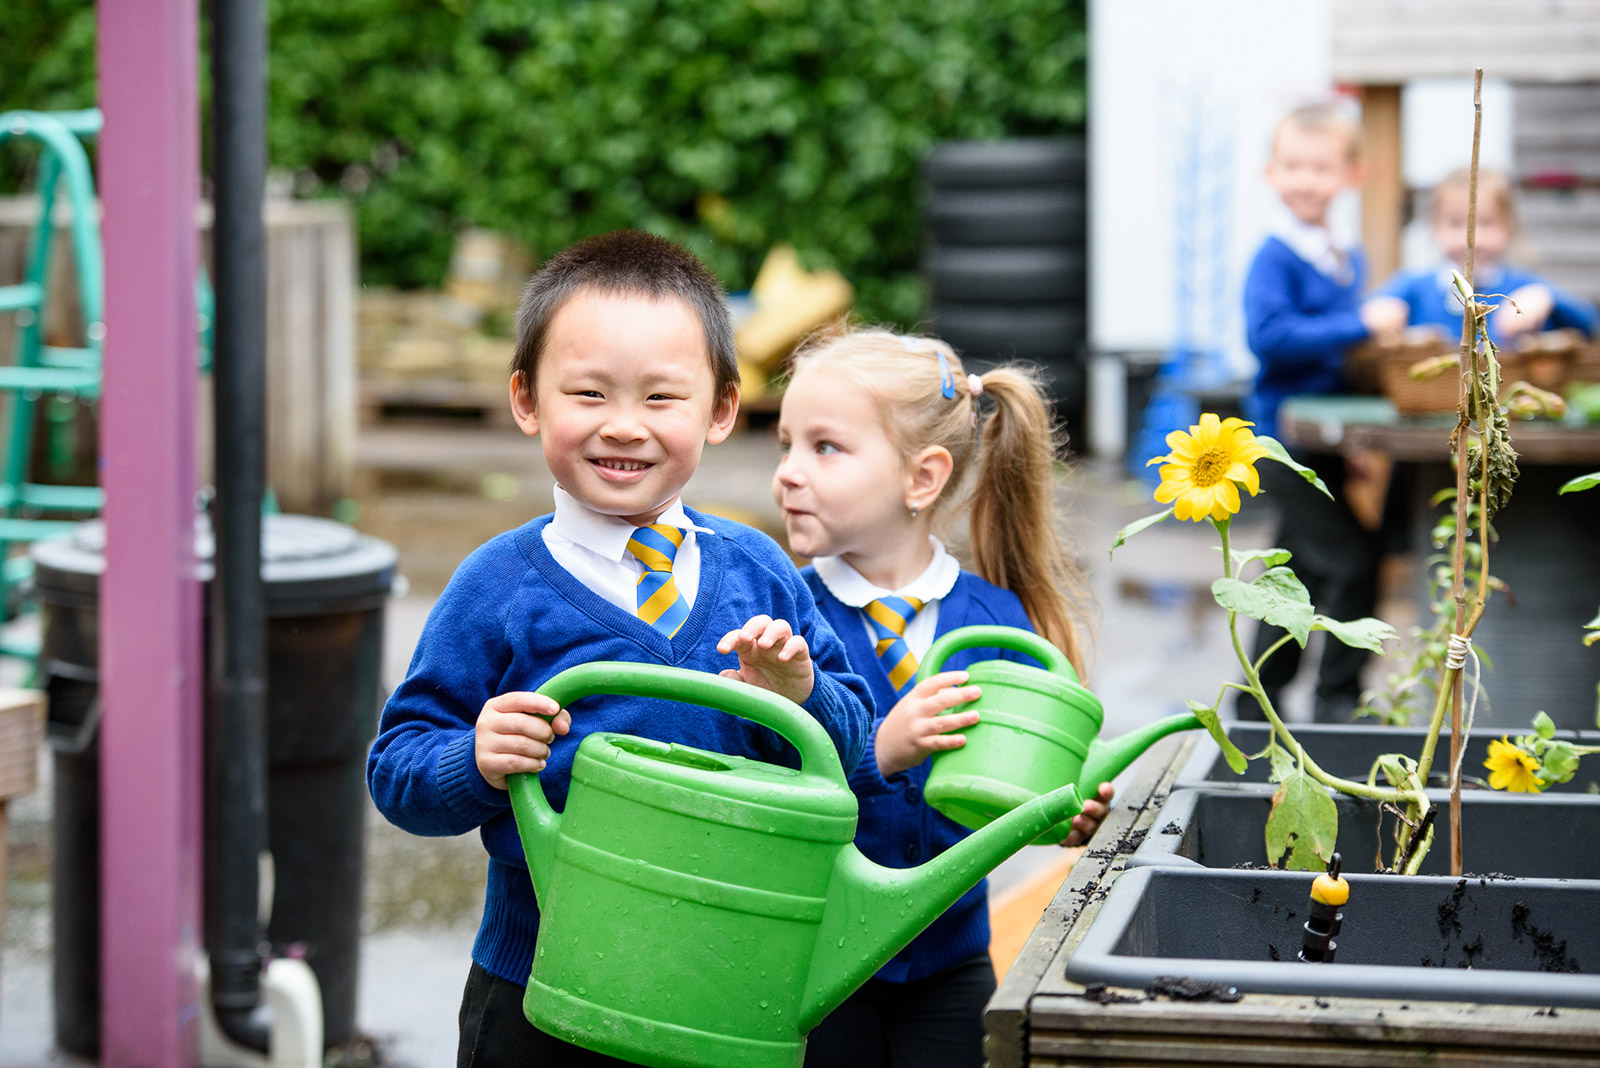 Image of children at school watering flowers